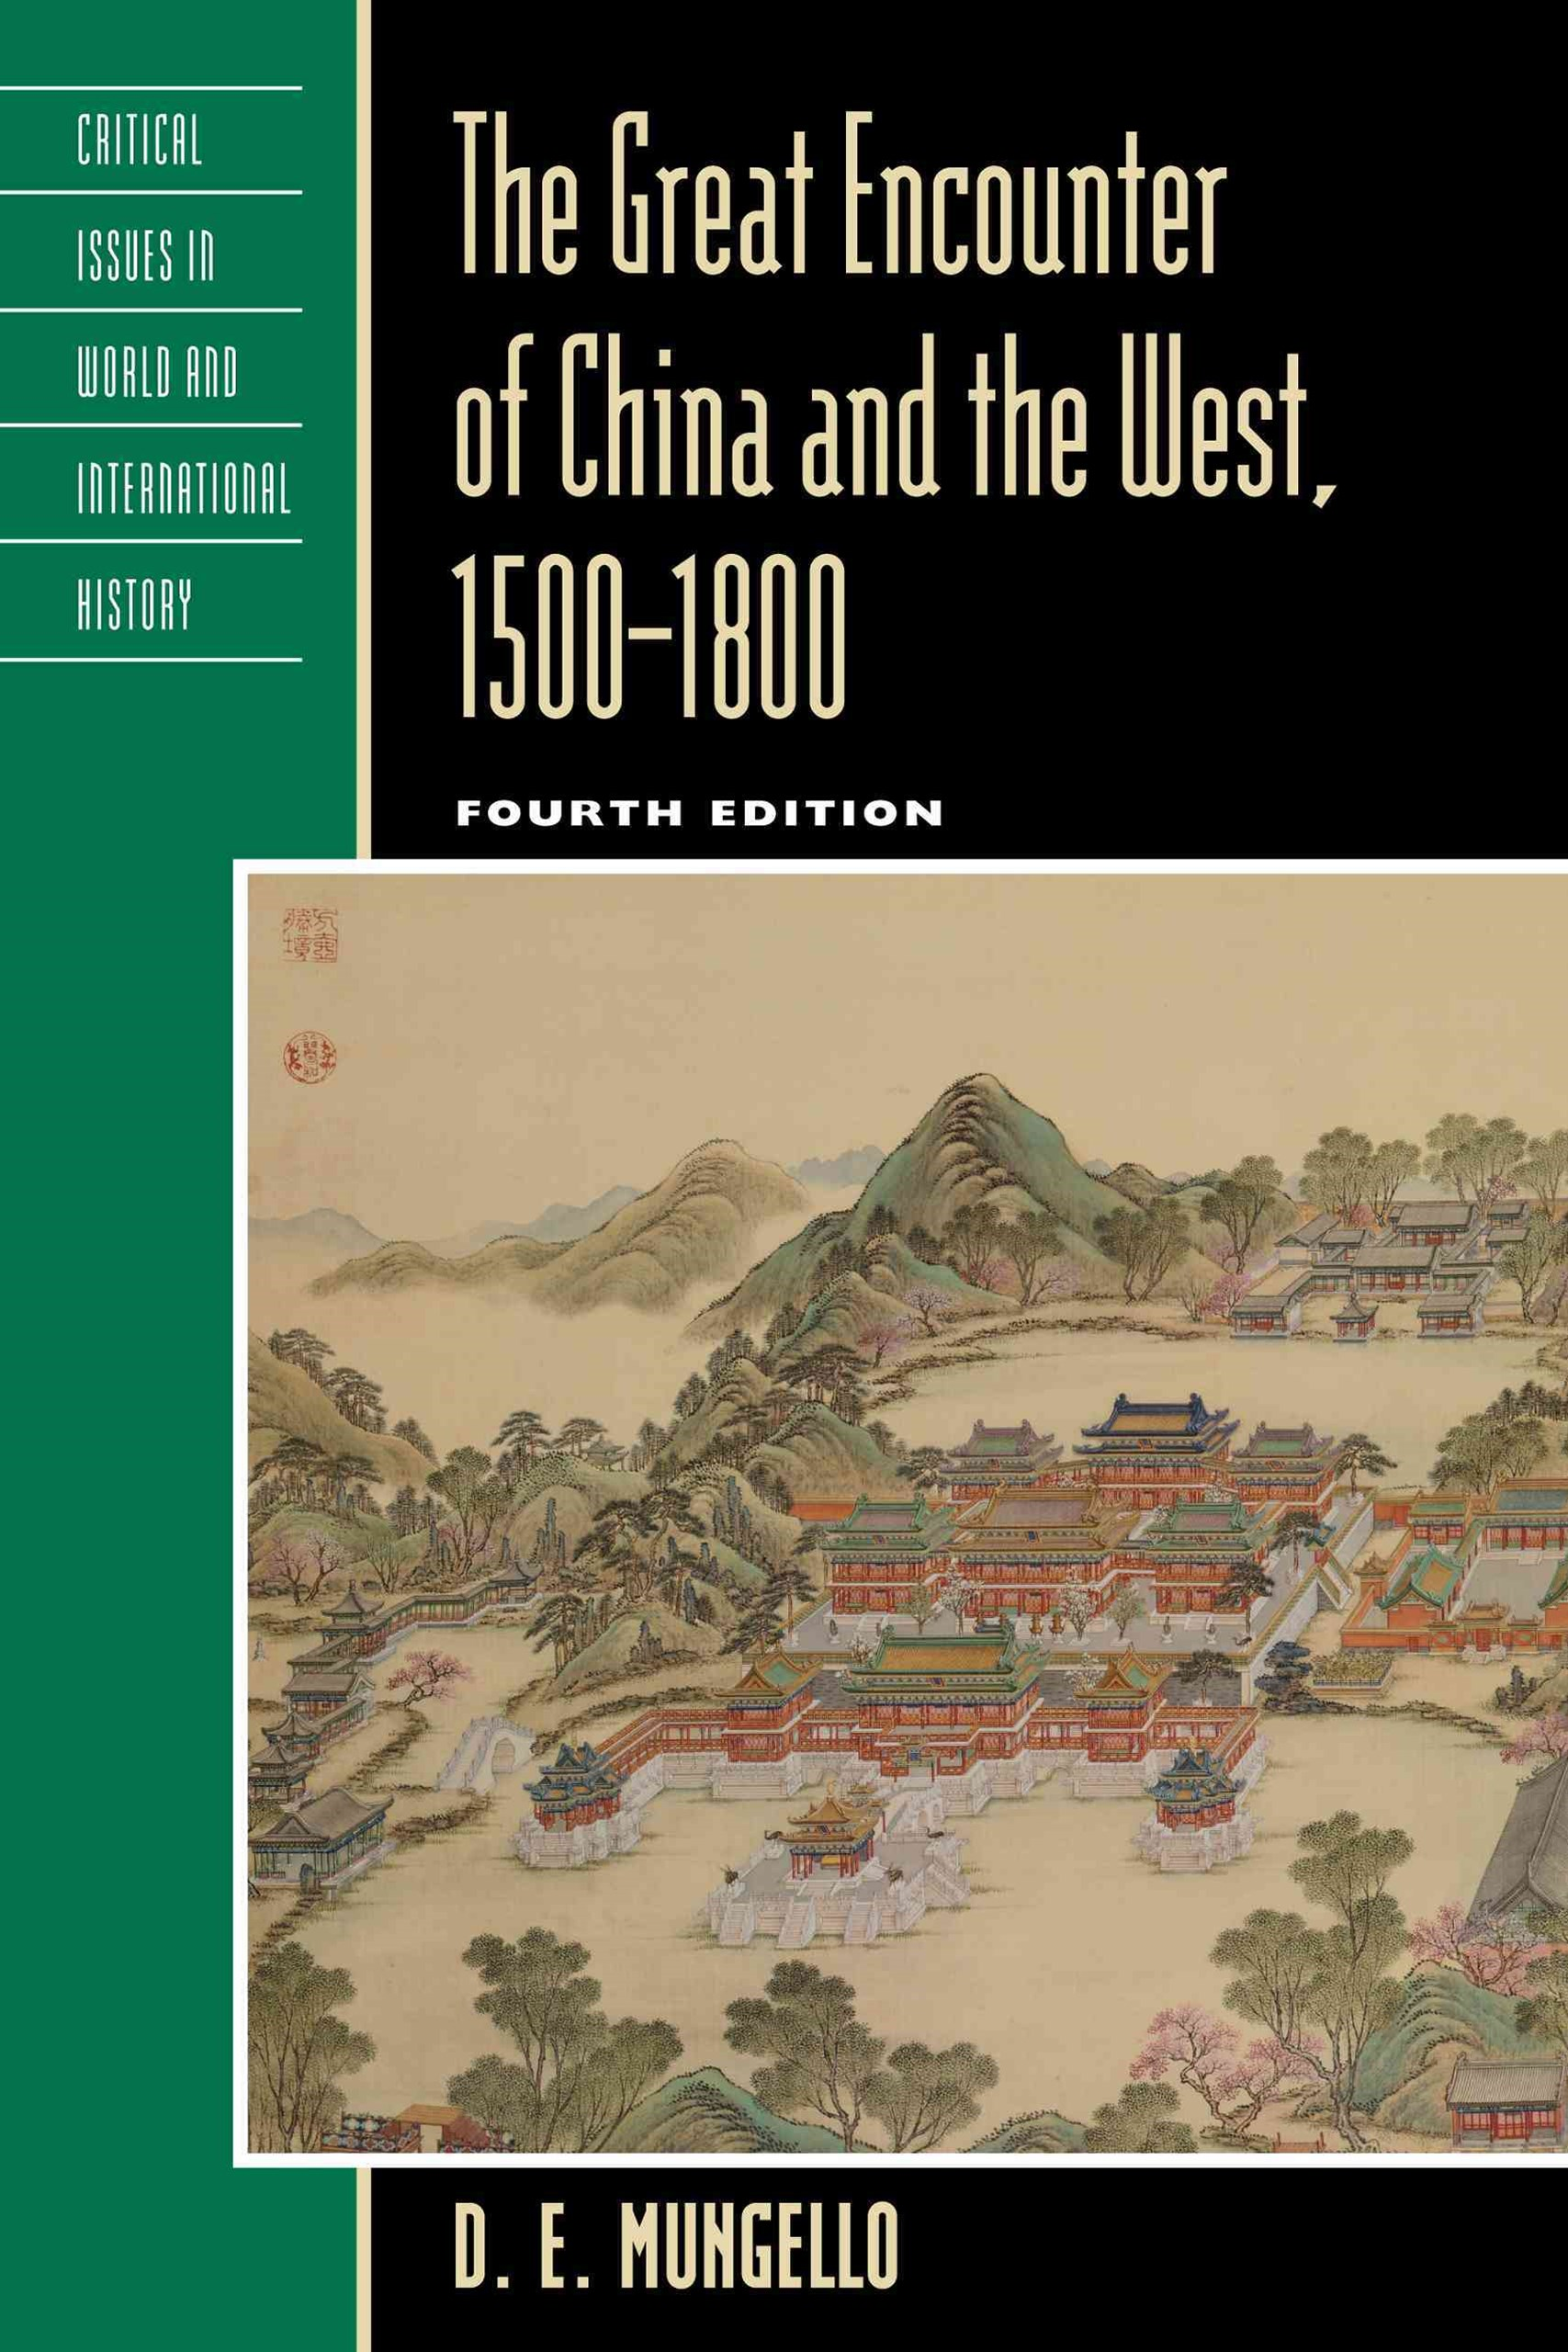 Great Encounter of China and the West, 1500-1800